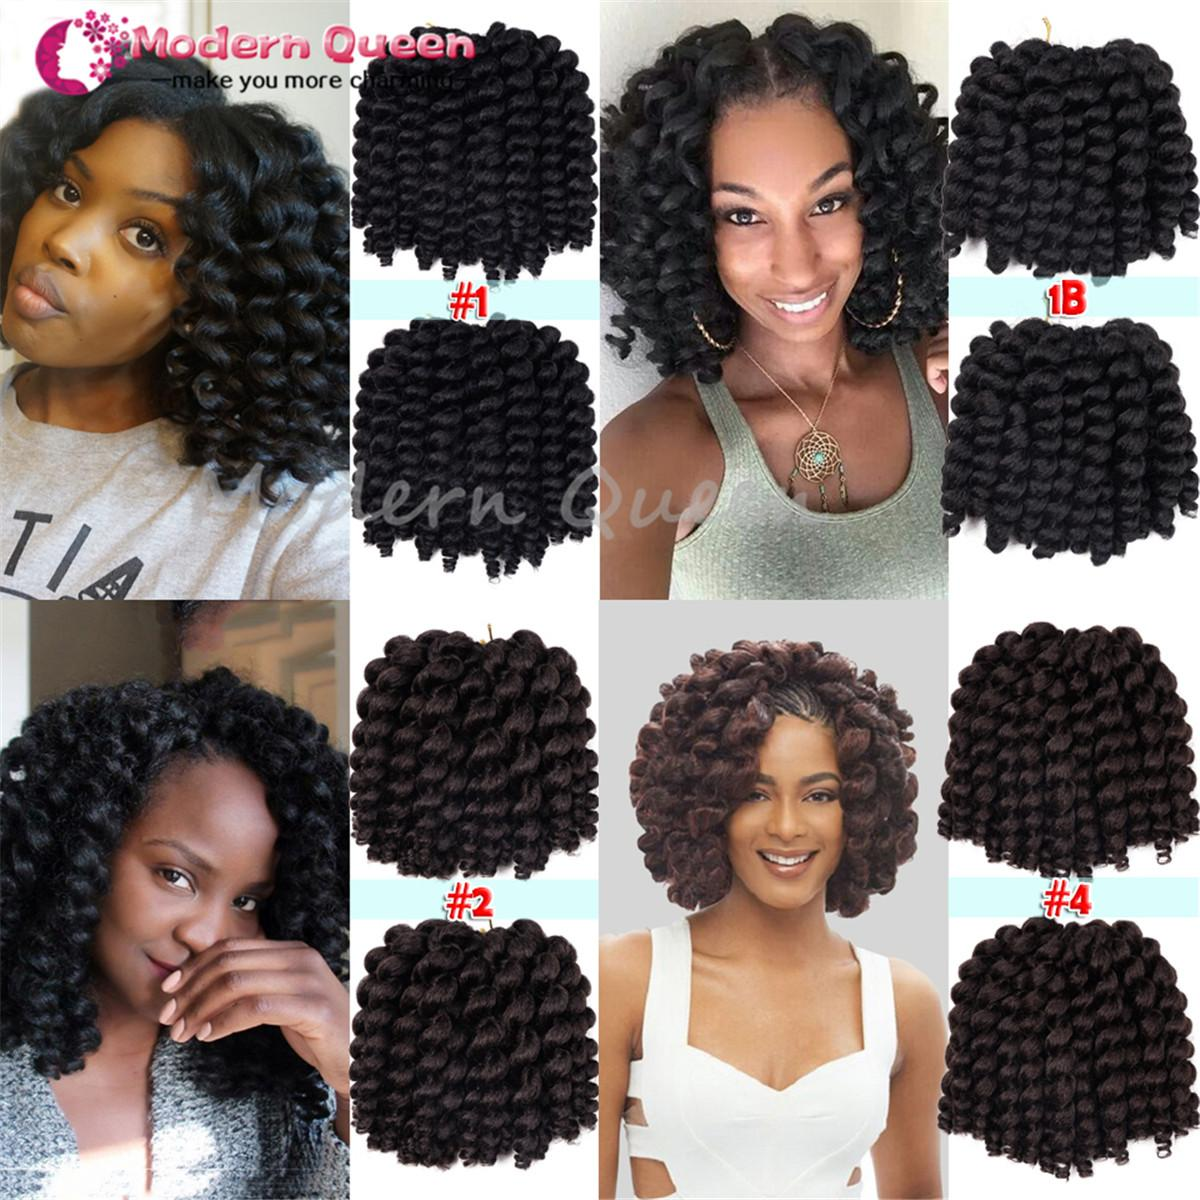 2019 2017 New Ombre Wand Curl Janet Collection Synthetic Kanekalon